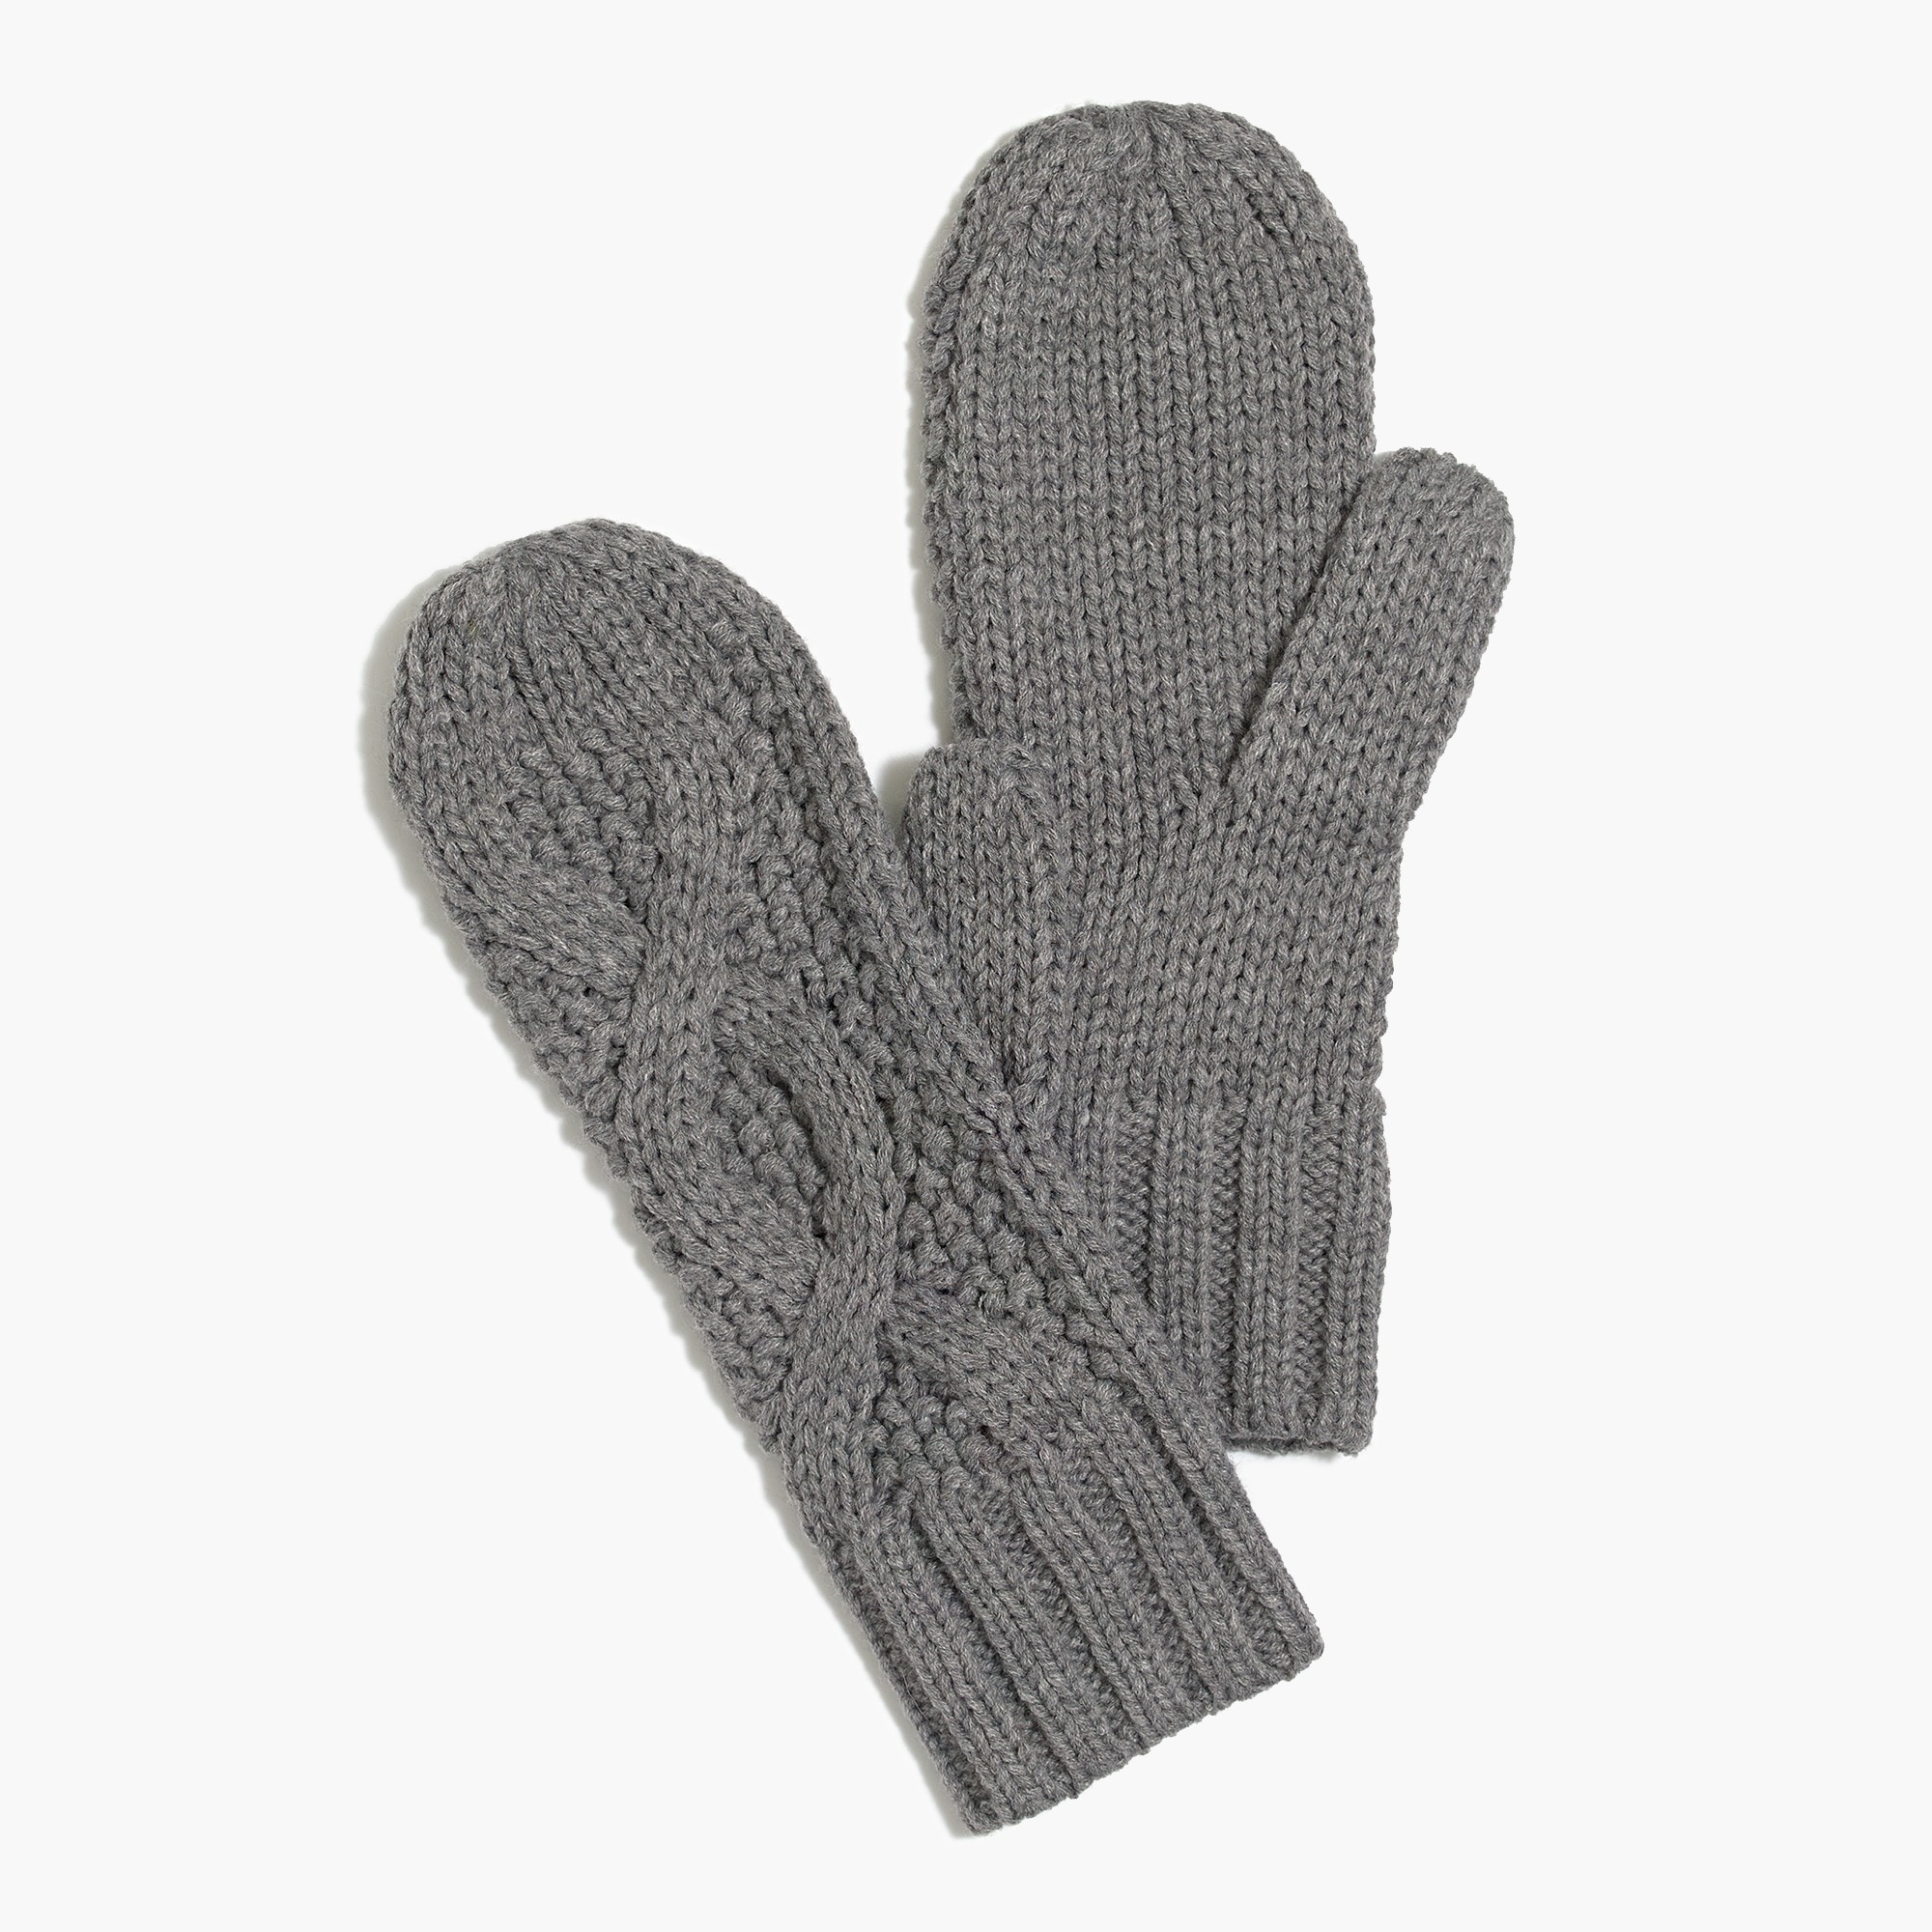 cable-knit mittens : factorywomen gloves & mittens